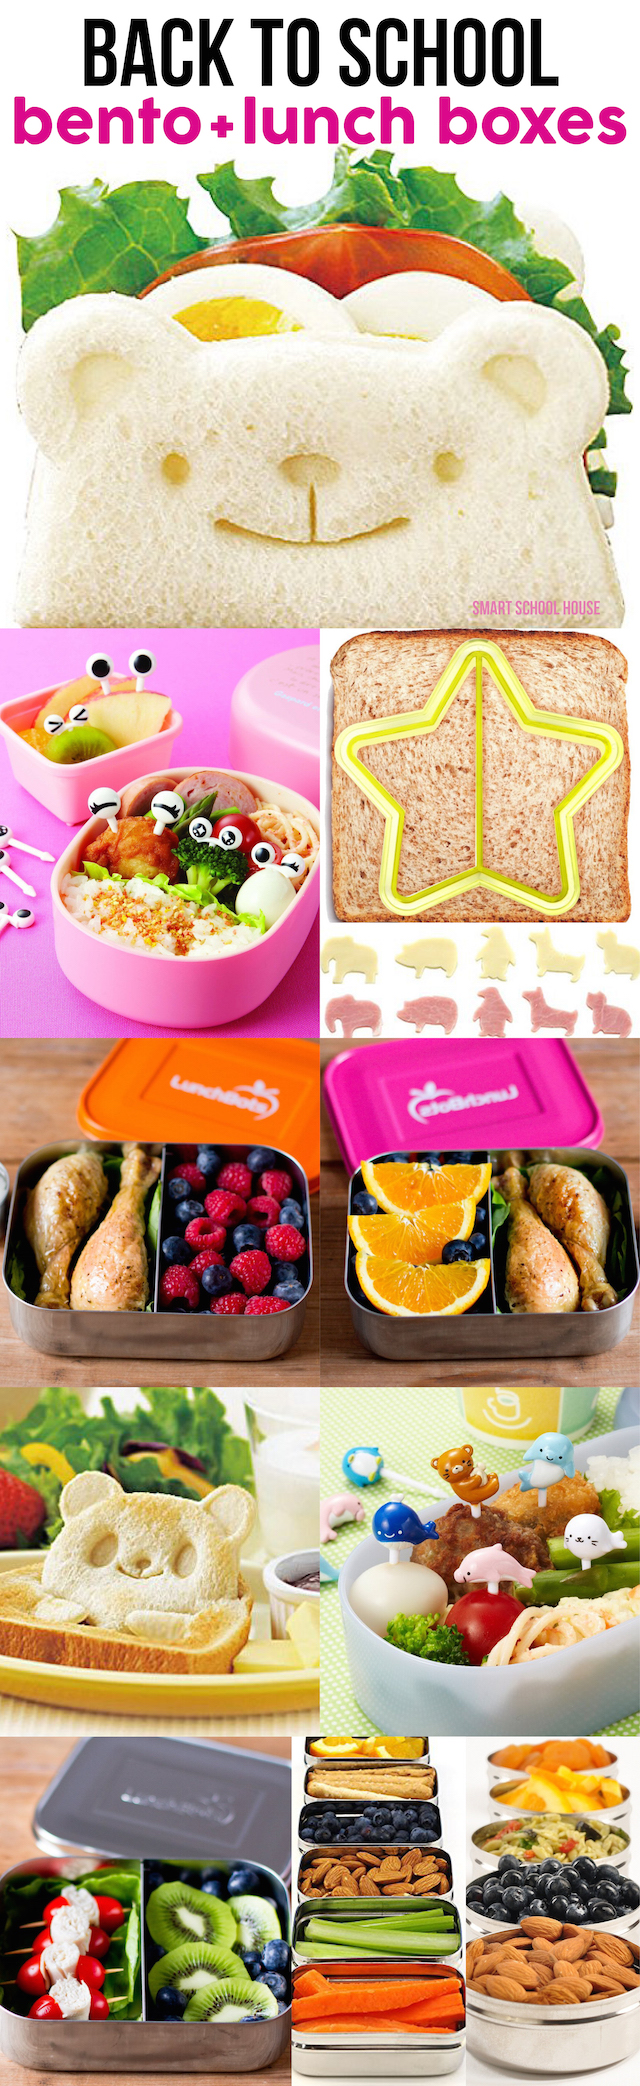 back to school bento lunch boxes. Black Bedroom Furniture Sets. Home Design Ideas